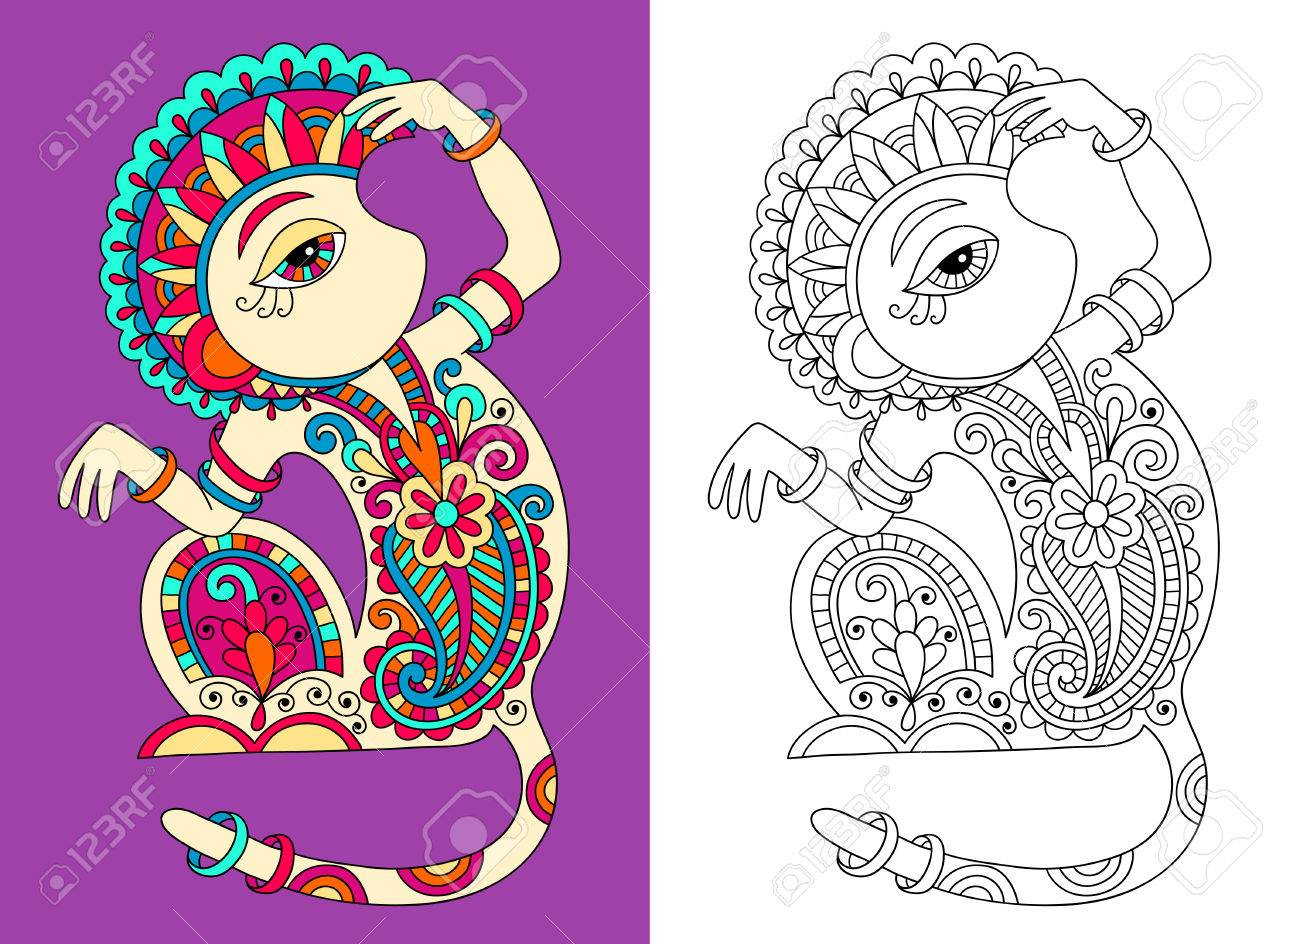 Coloring Pages Vector - Vector coloring book page for adults with unusual fantastic monkey in decorative ukrainian karakoko style vector illustration